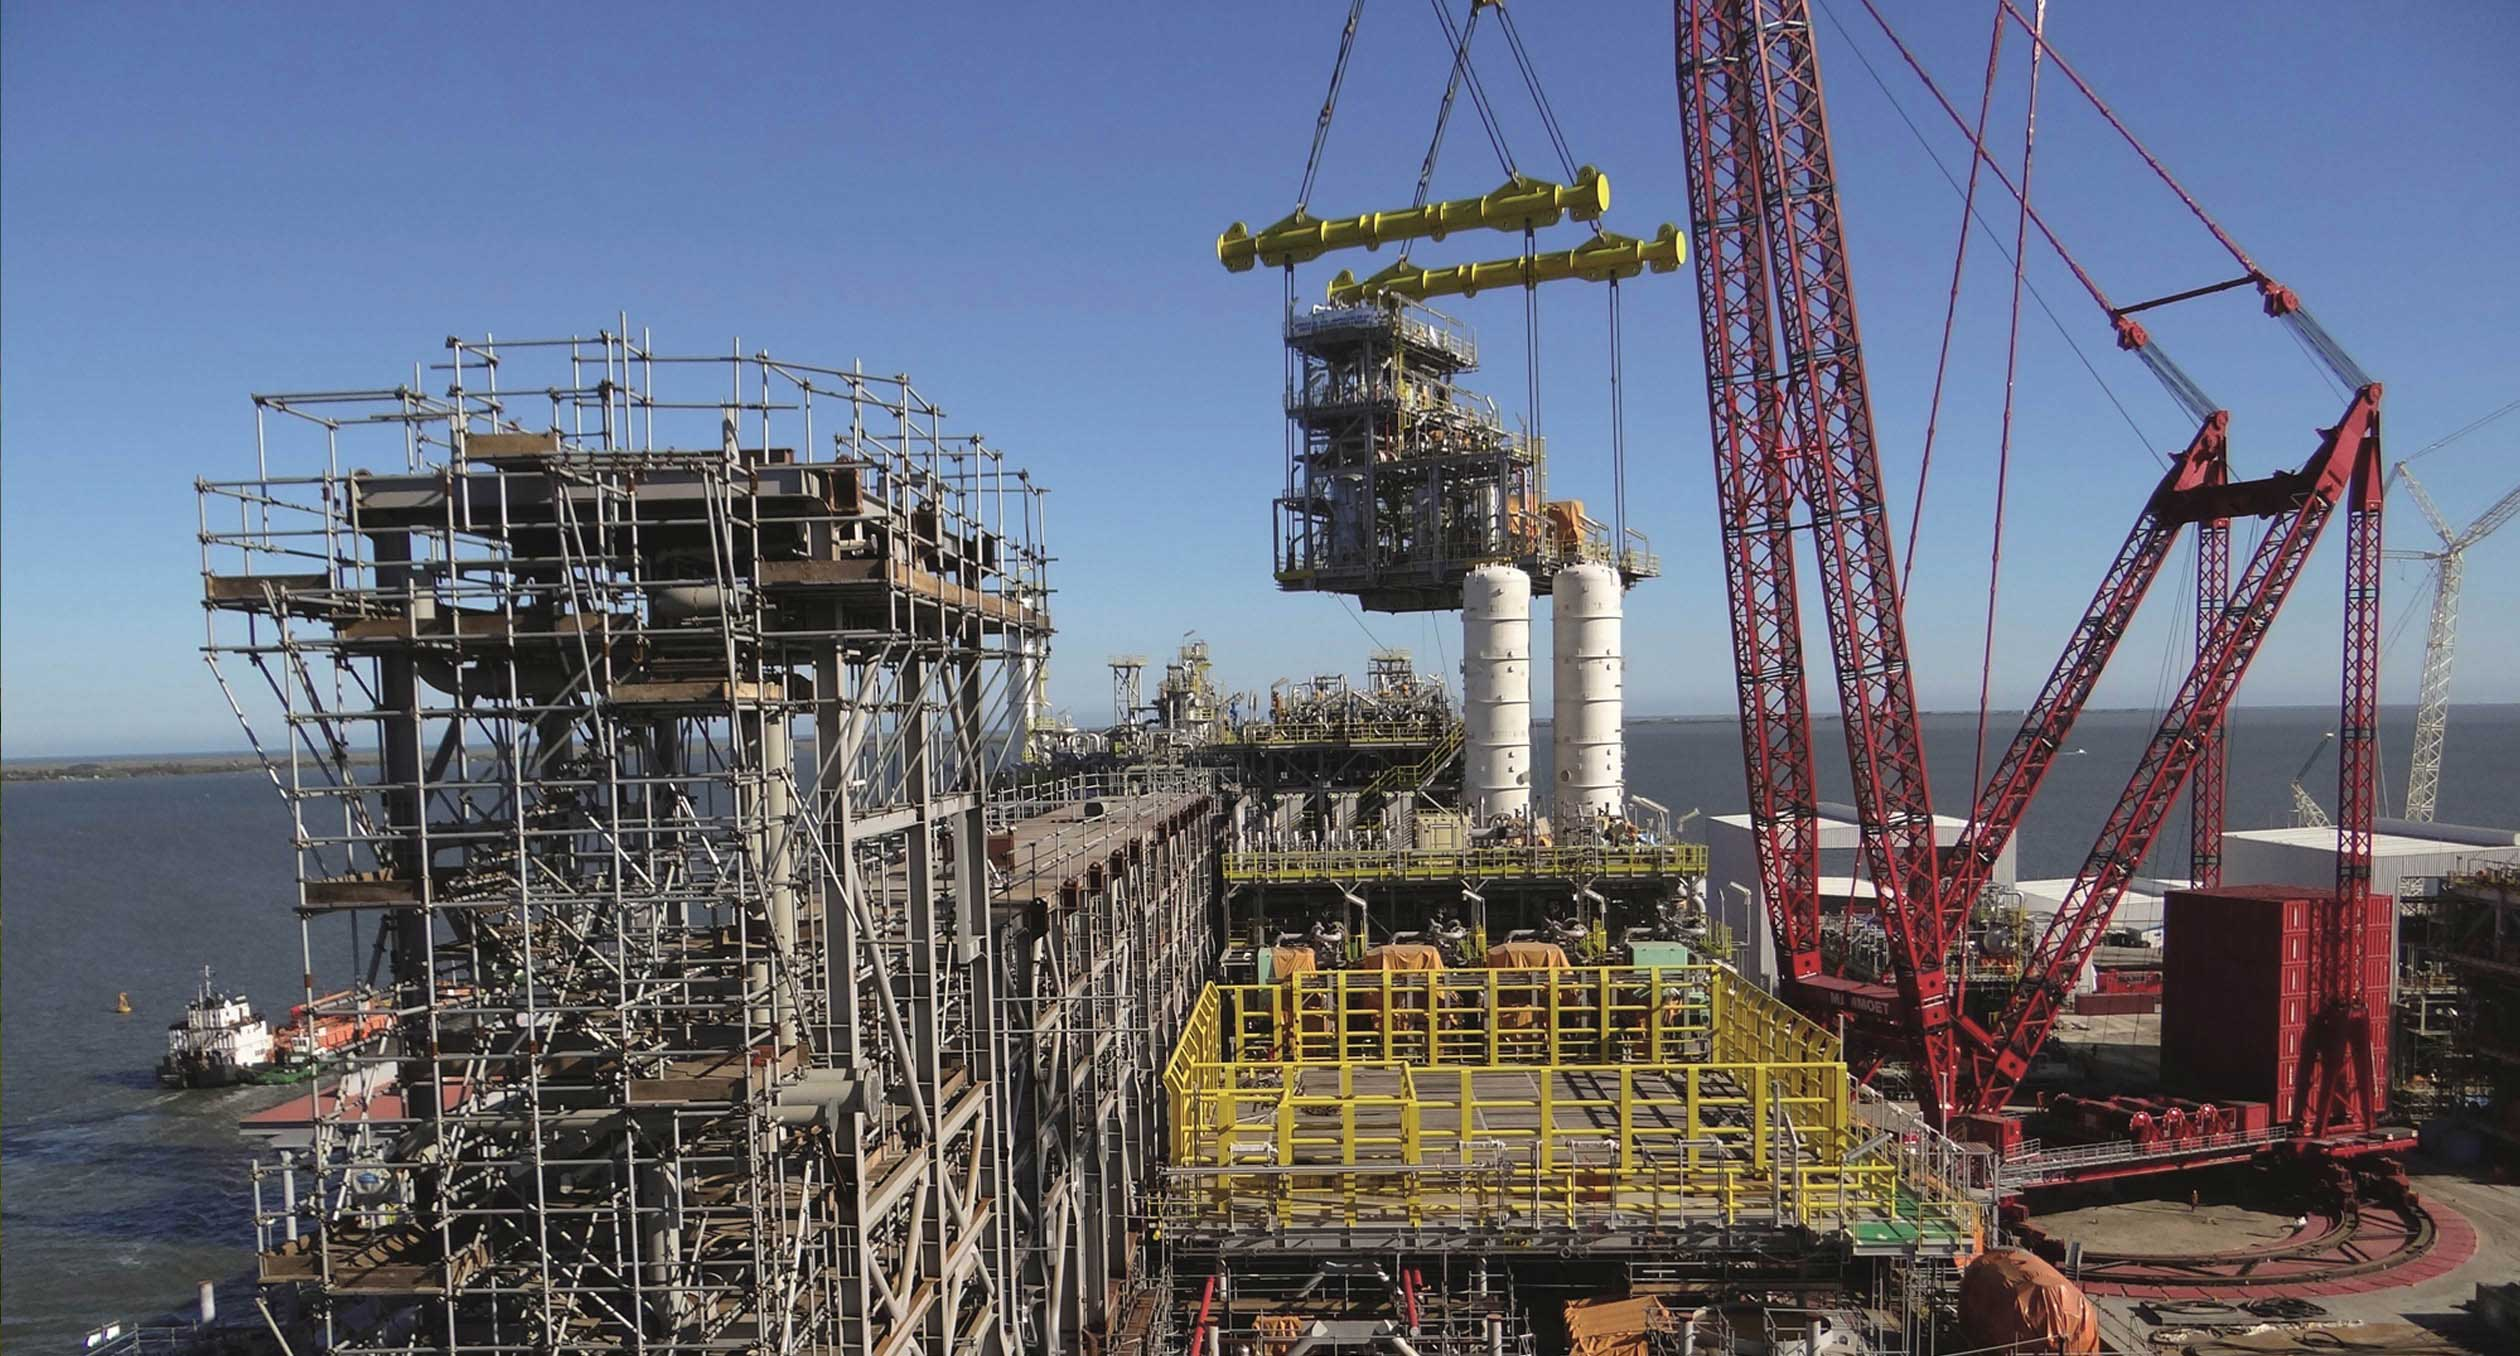 Project Fpso Mammoet Offshore Modular Construction